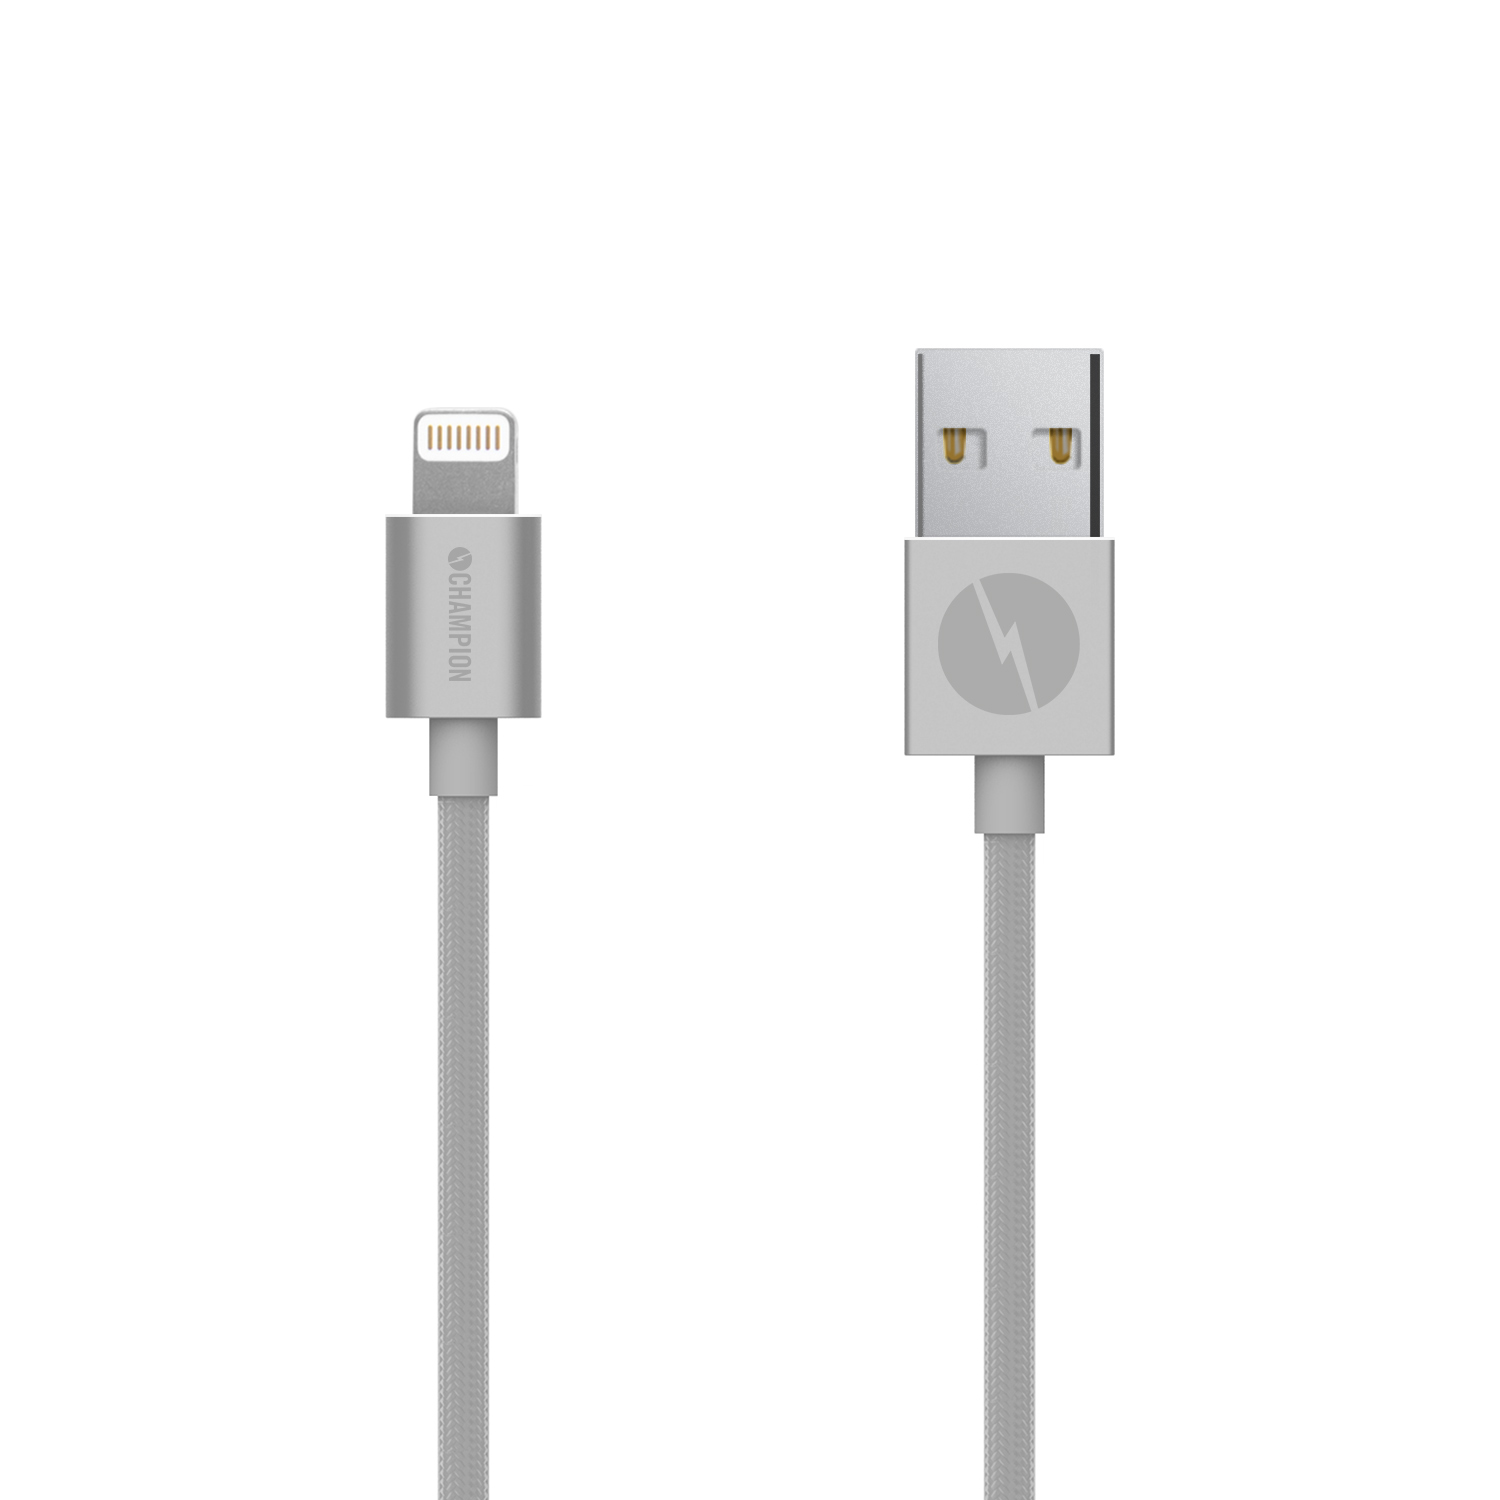 10st Micro Usb Till Typ C Adapter USB C Kabel Laddare till Samsung Galaxy S8 Galaxy S8 Plus Not 8 Huawei P10 P9 Plus Mate 9 Xiaomi 5 5c 5s OnePlus 3